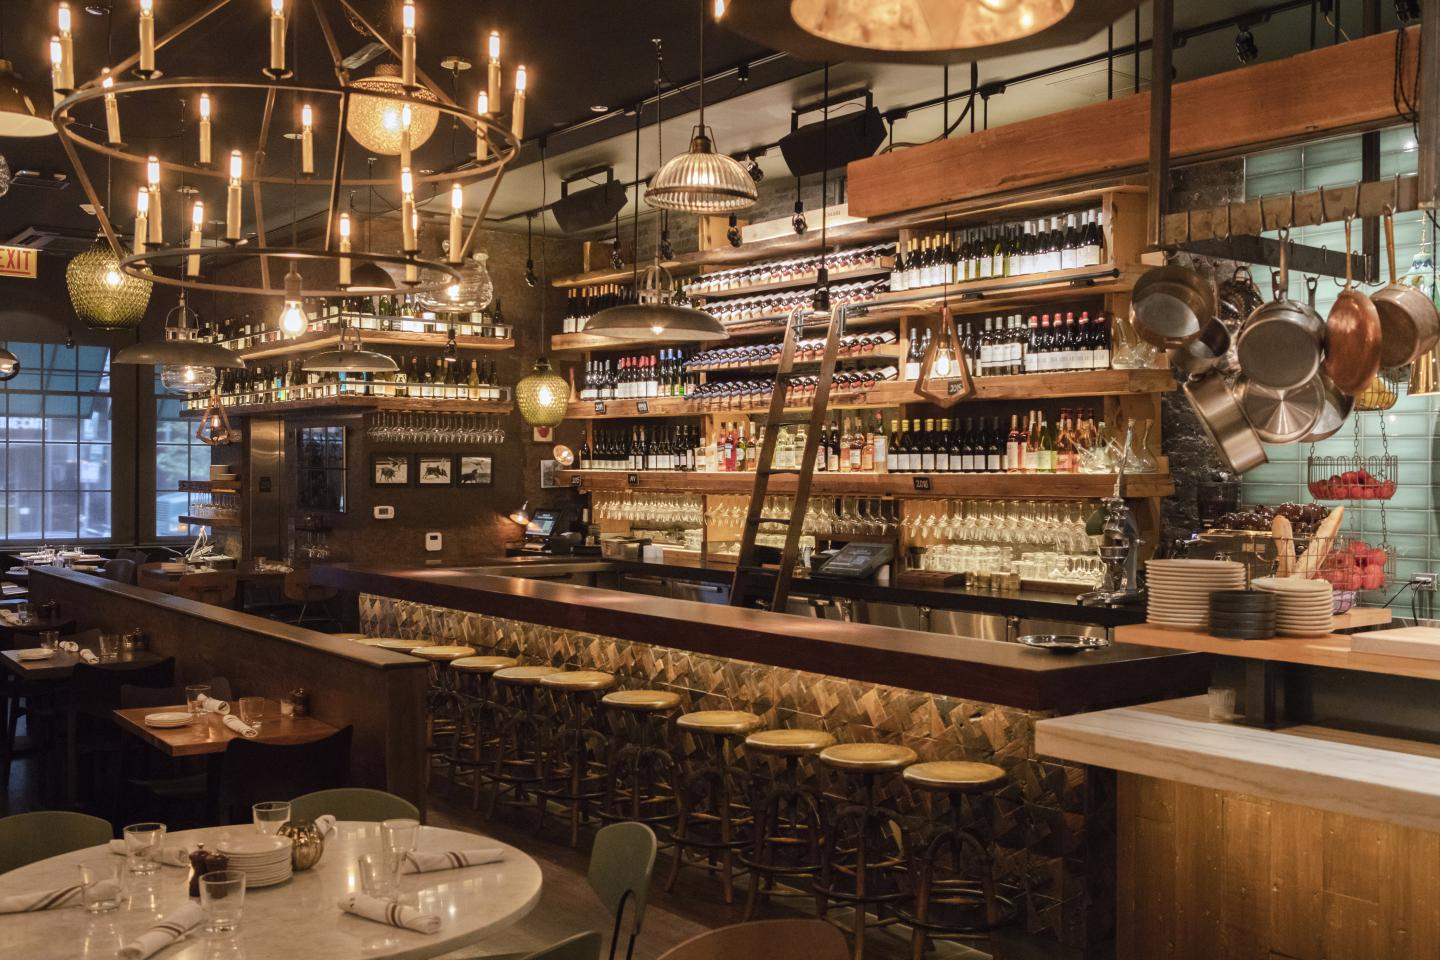 Bar Ramone interior wine bar